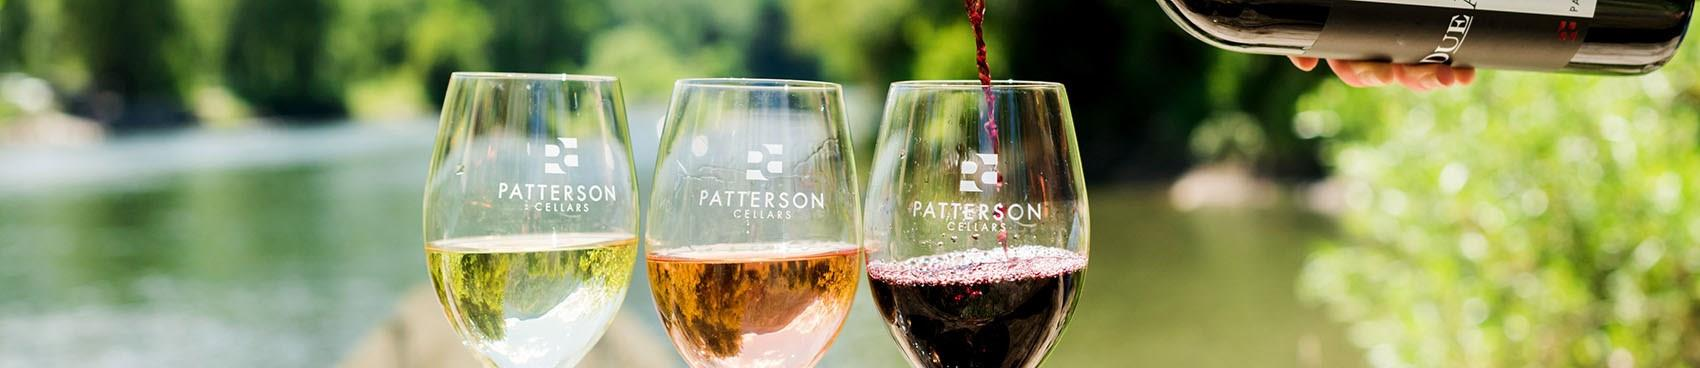 Purchase Tickets to Wine Club Appreciation BBQ - Friday, August 16 at Patterson Cellars on CellarPass